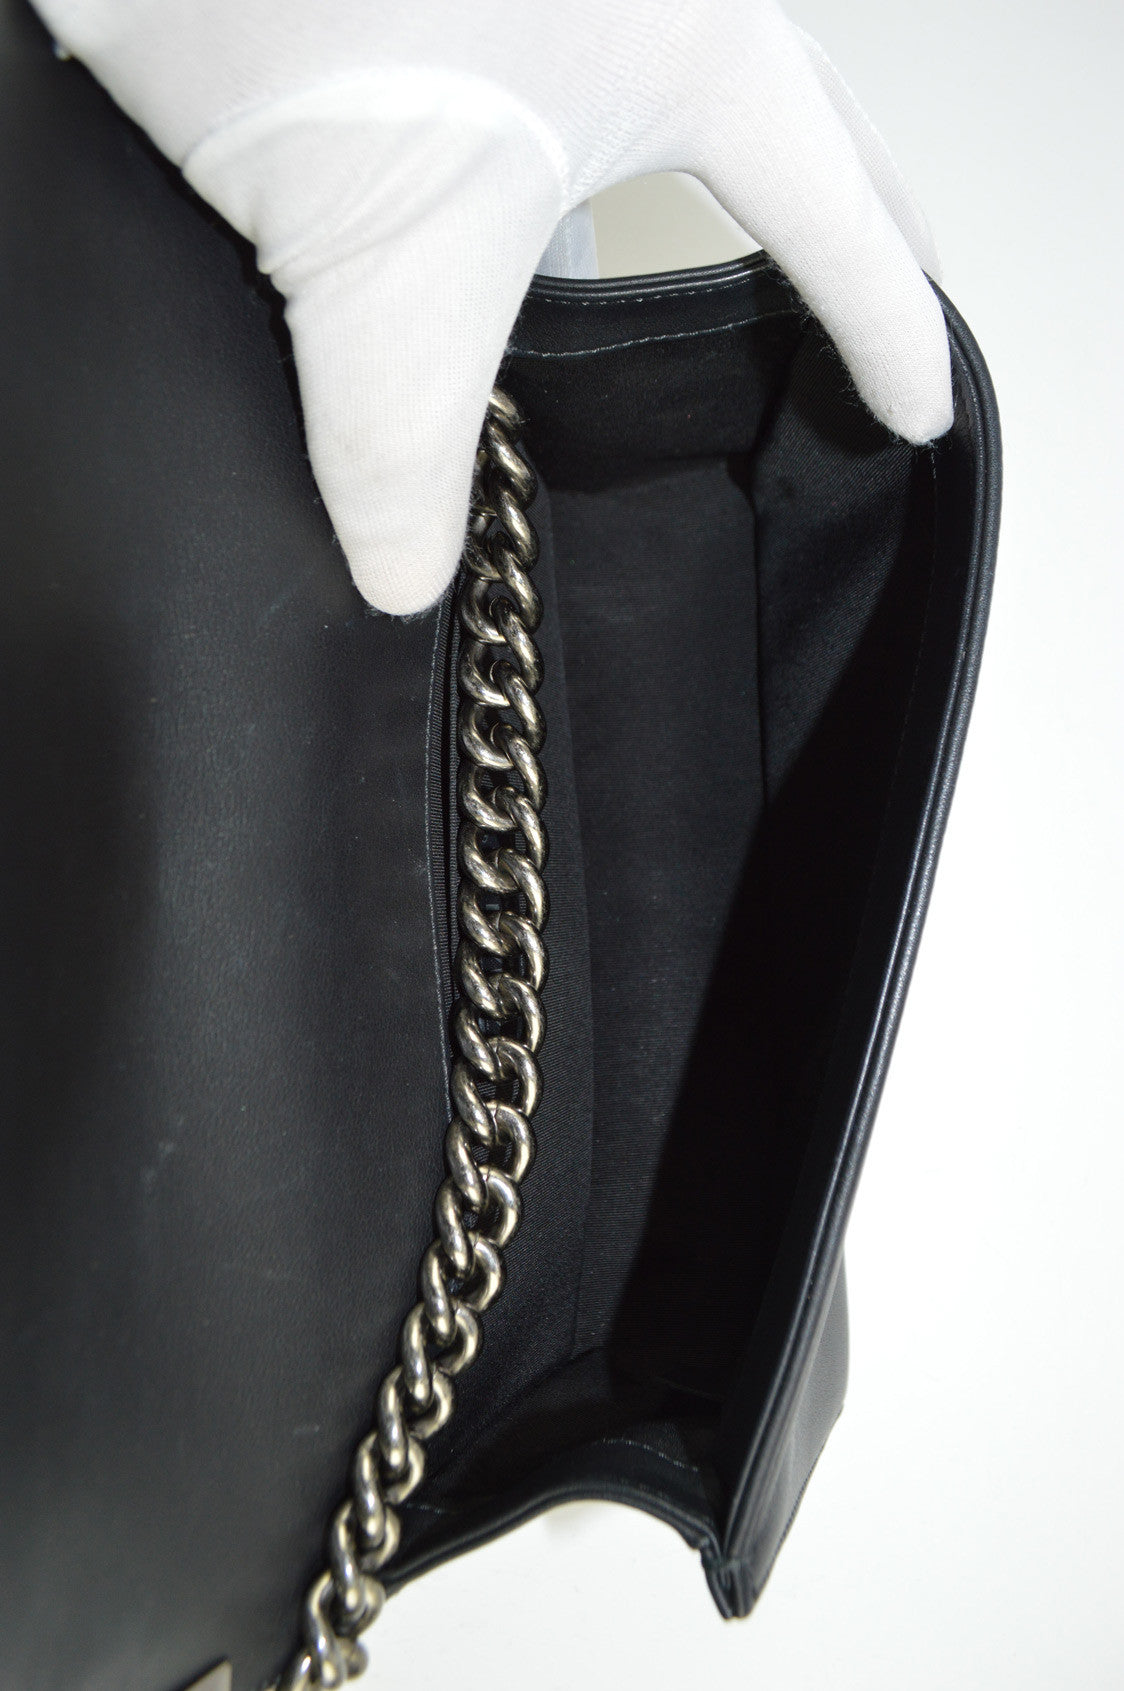 Black Lambskin Old Medium Chevron Boy Bag RHW - ON LAYAWAY